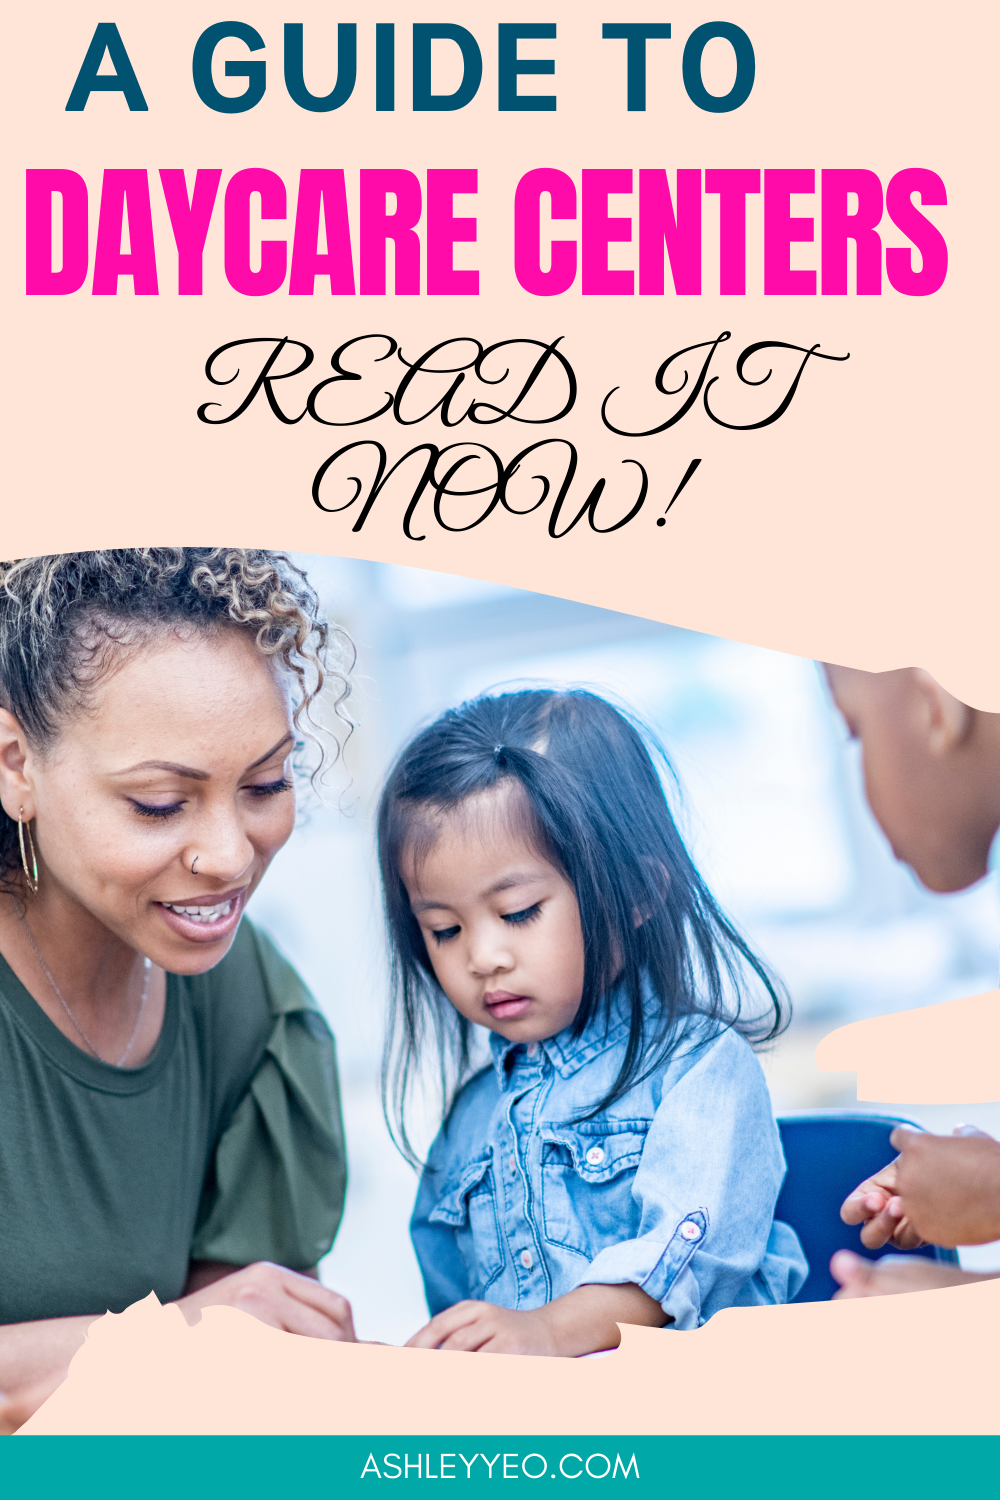 A Guide To Daycare Centers